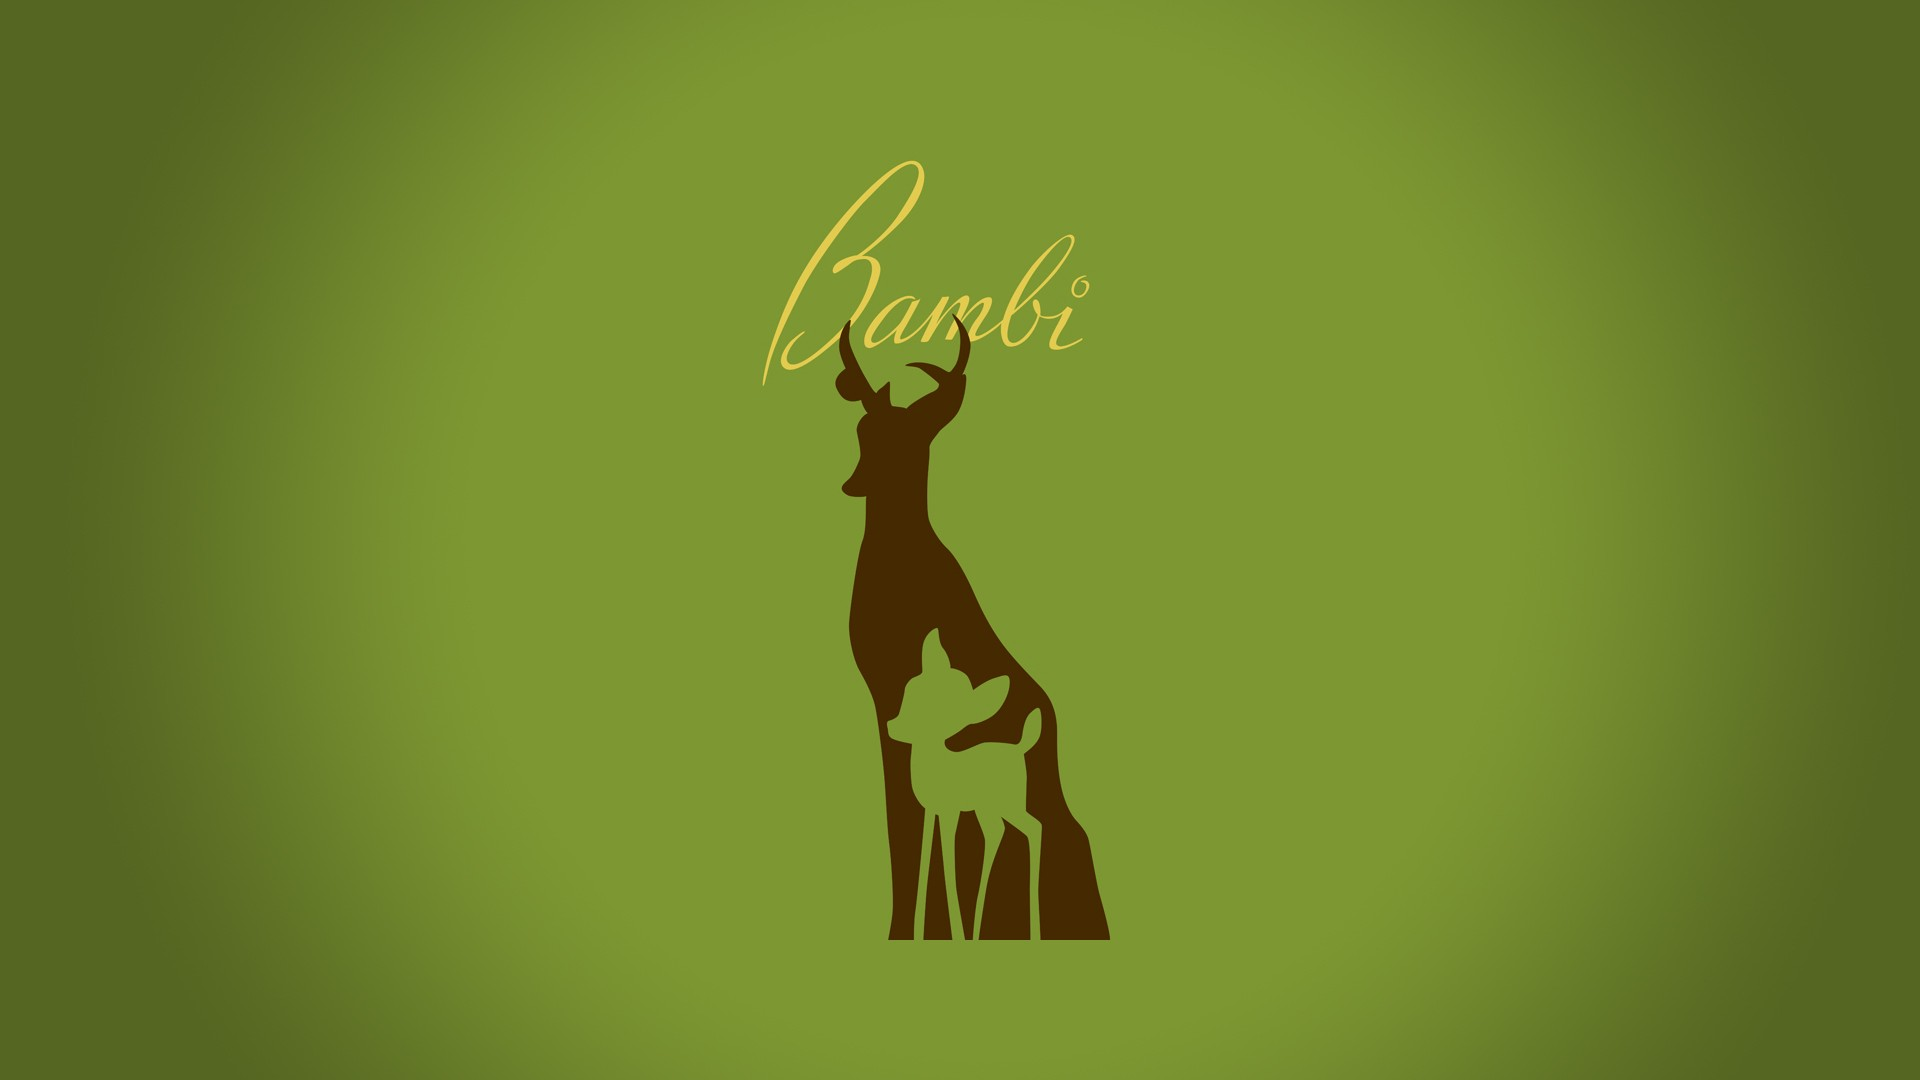 minimalistic bambi hd wallpaper